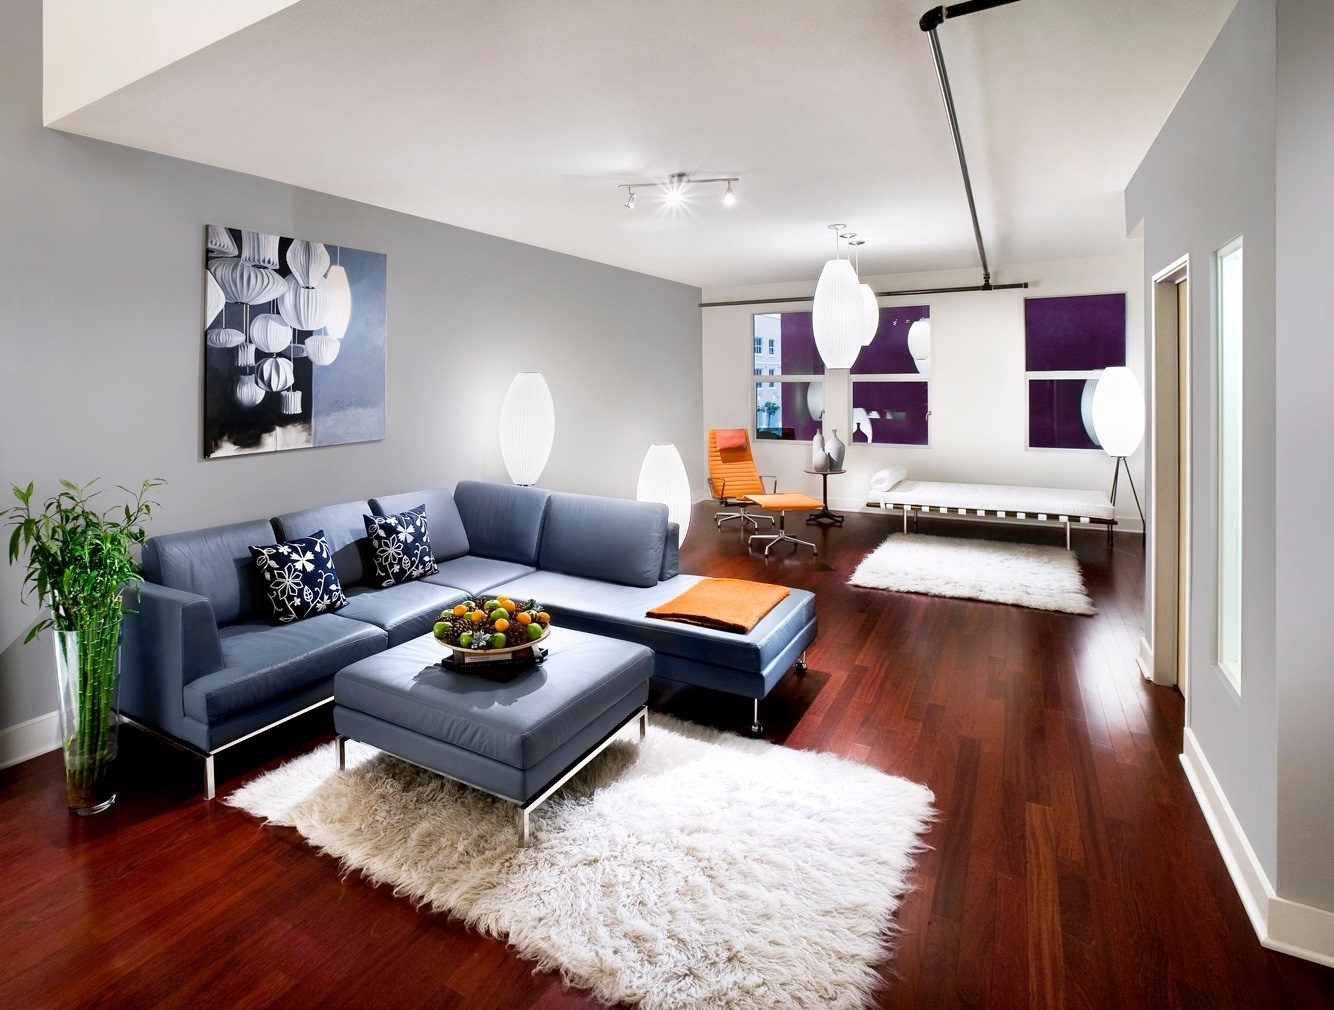 Cute-Modern-Living-Room-Set-Up-In-Decor-Gallery-Ideas